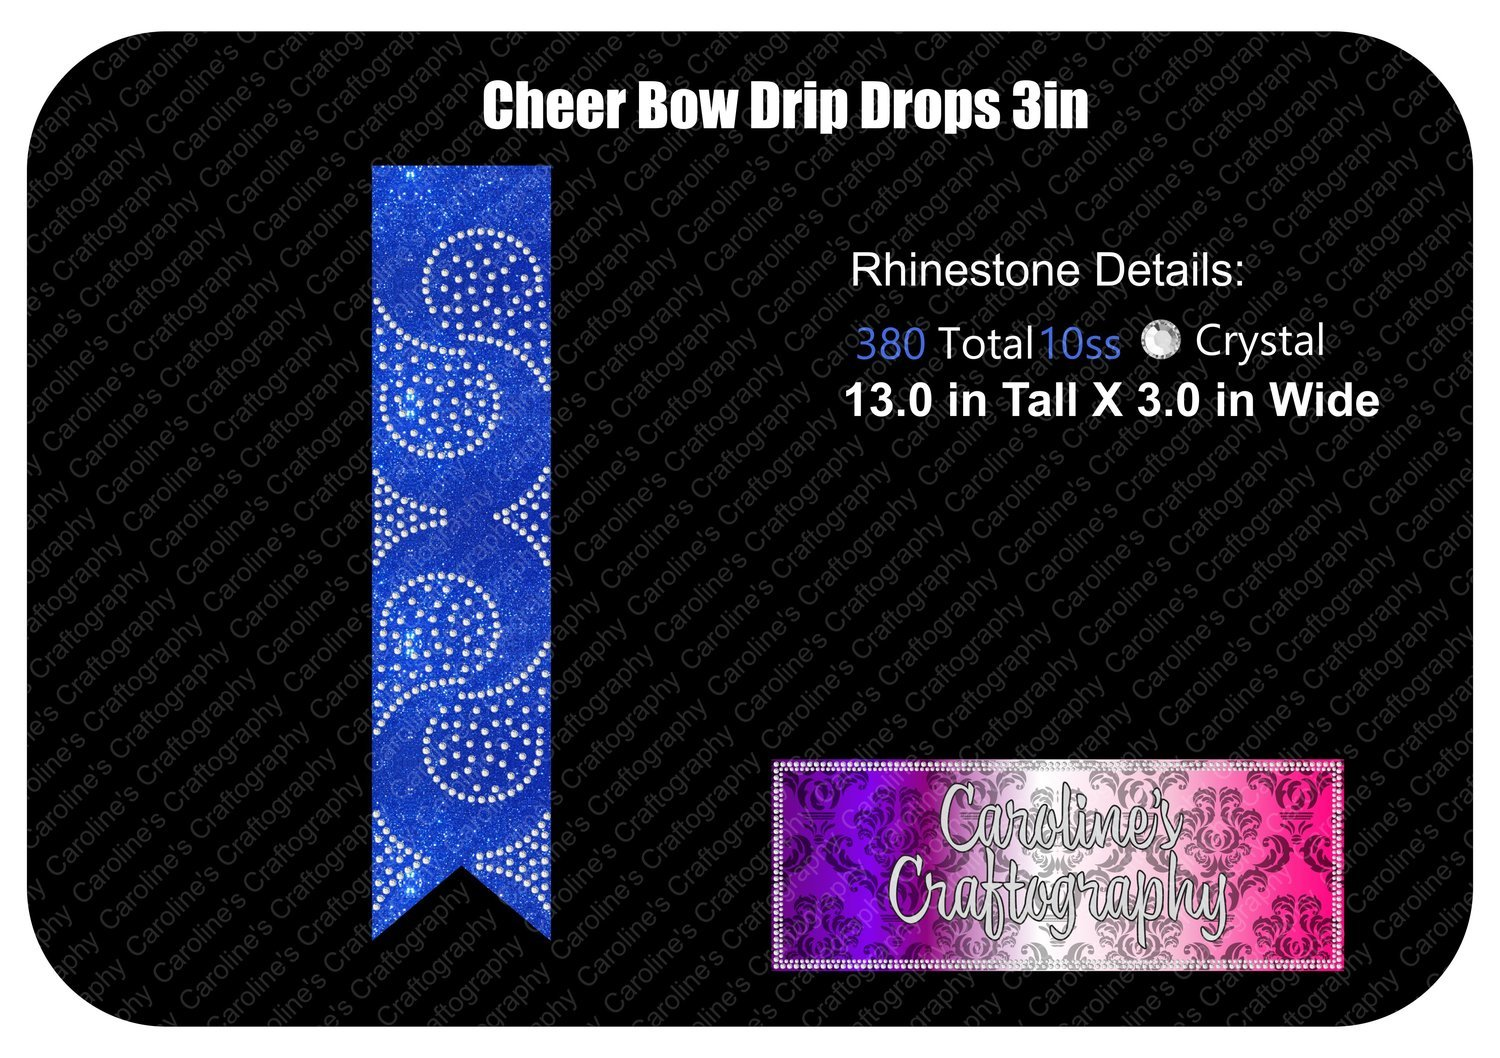 Drip Drops 3in Cheer Bow